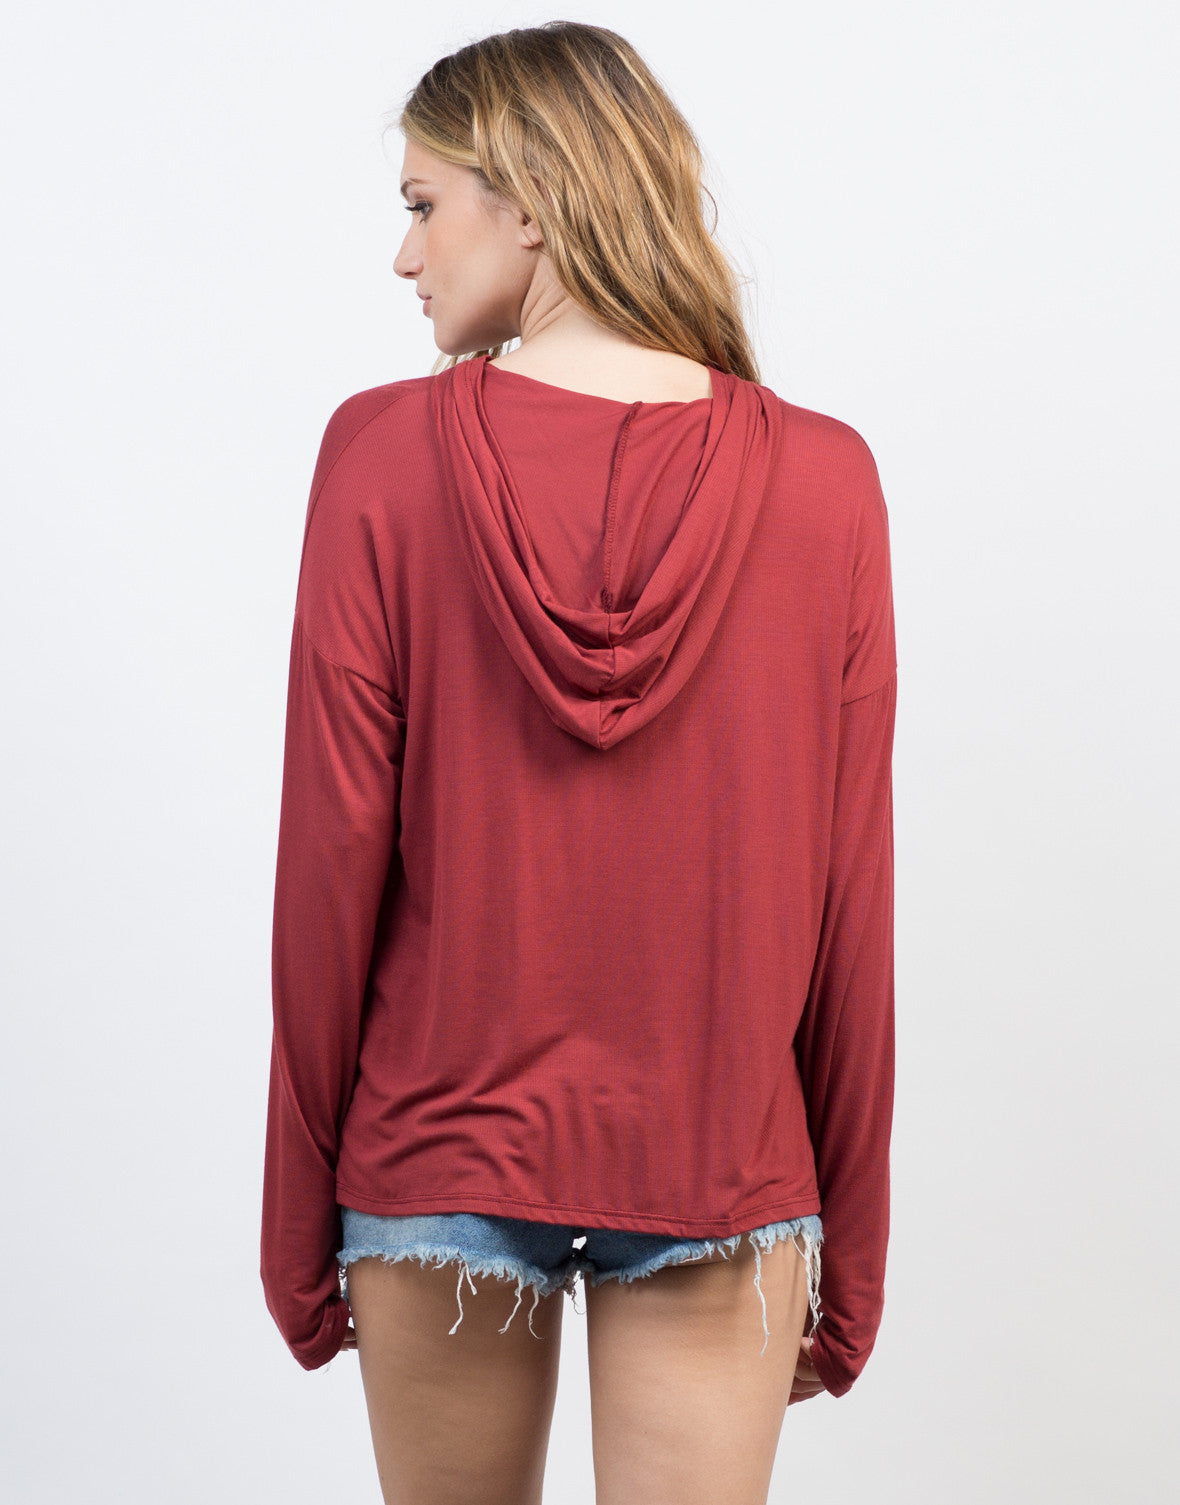 Back View of Hooded Pullover Top